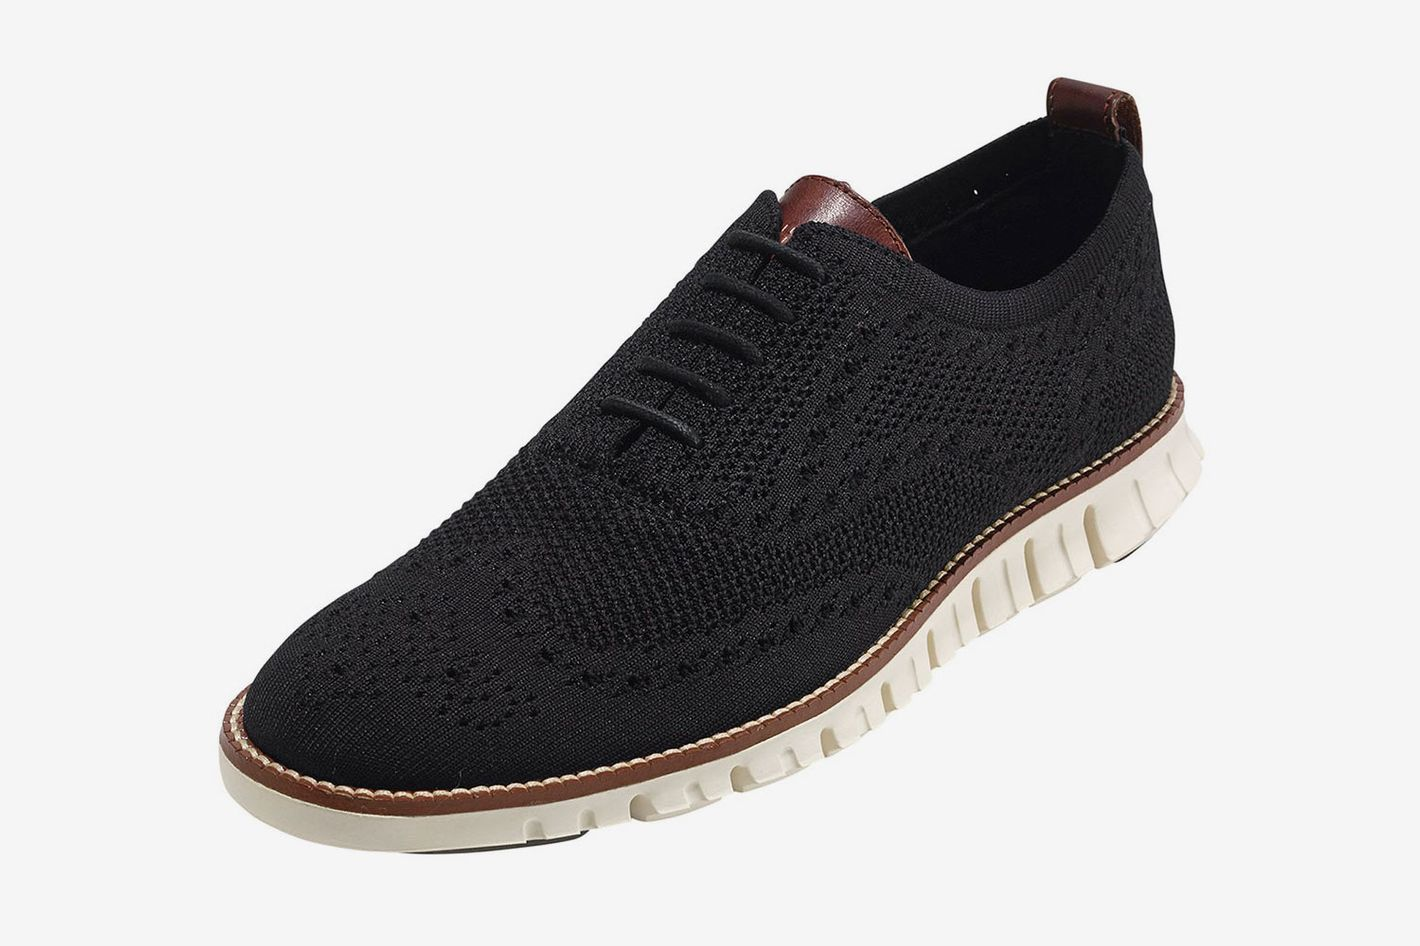 f4a9532f5f8 17 Best Orthopedic Shoes for Men 2018